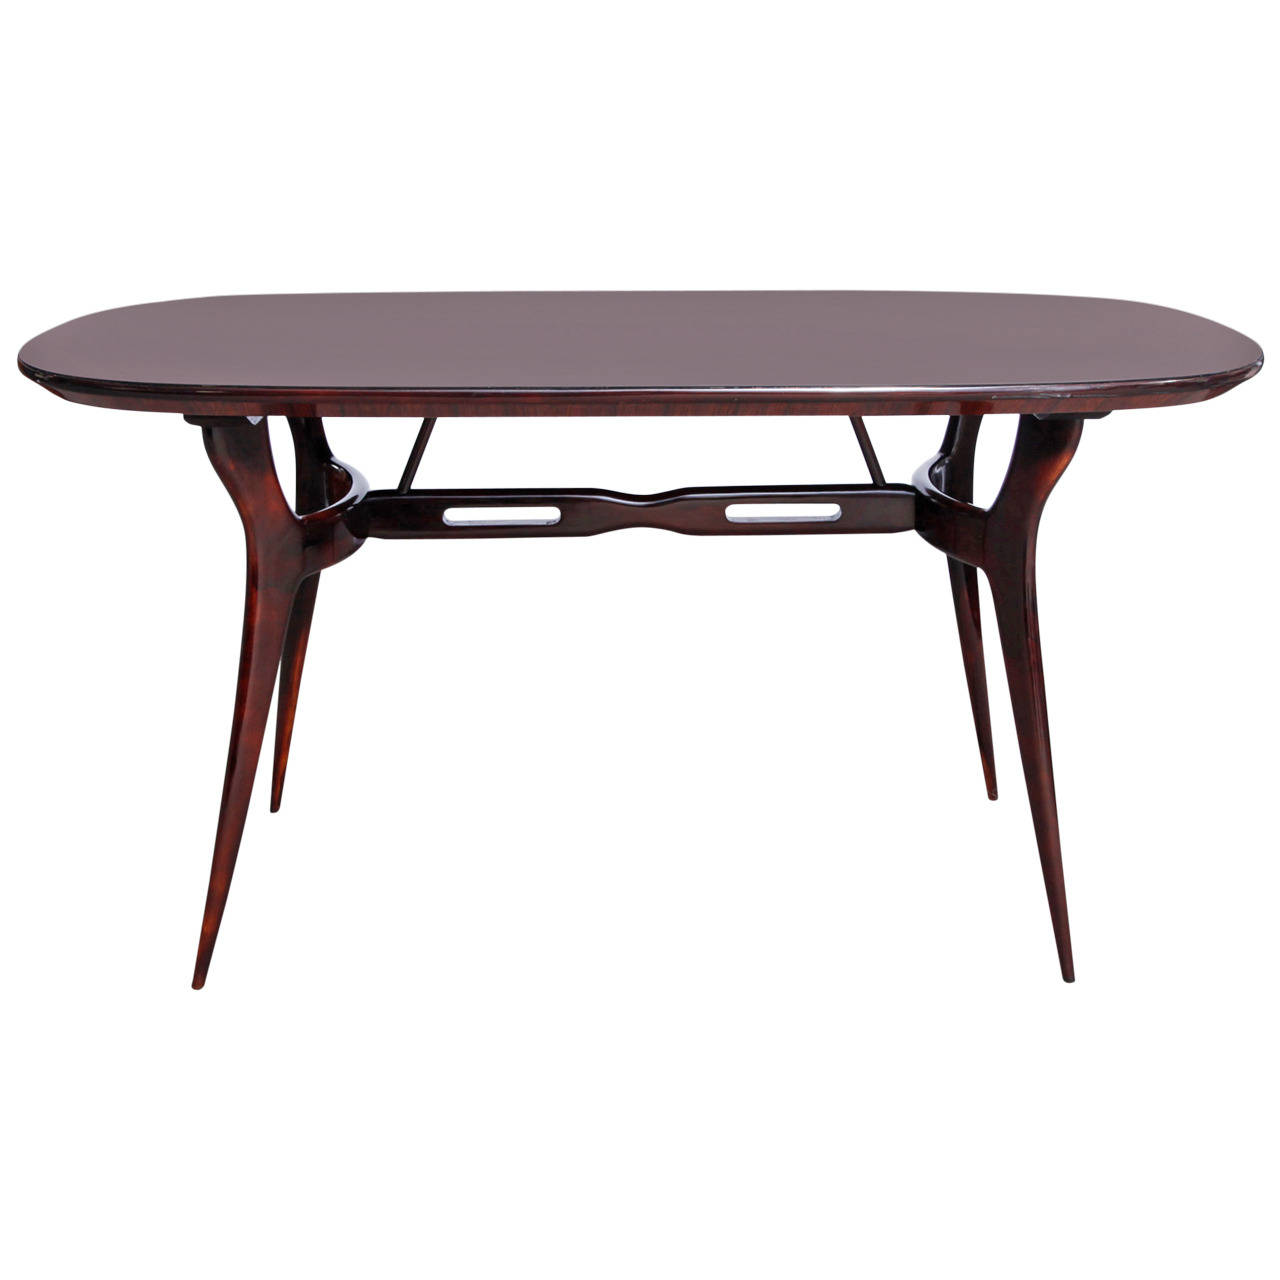 Table designed by Gio Ponti